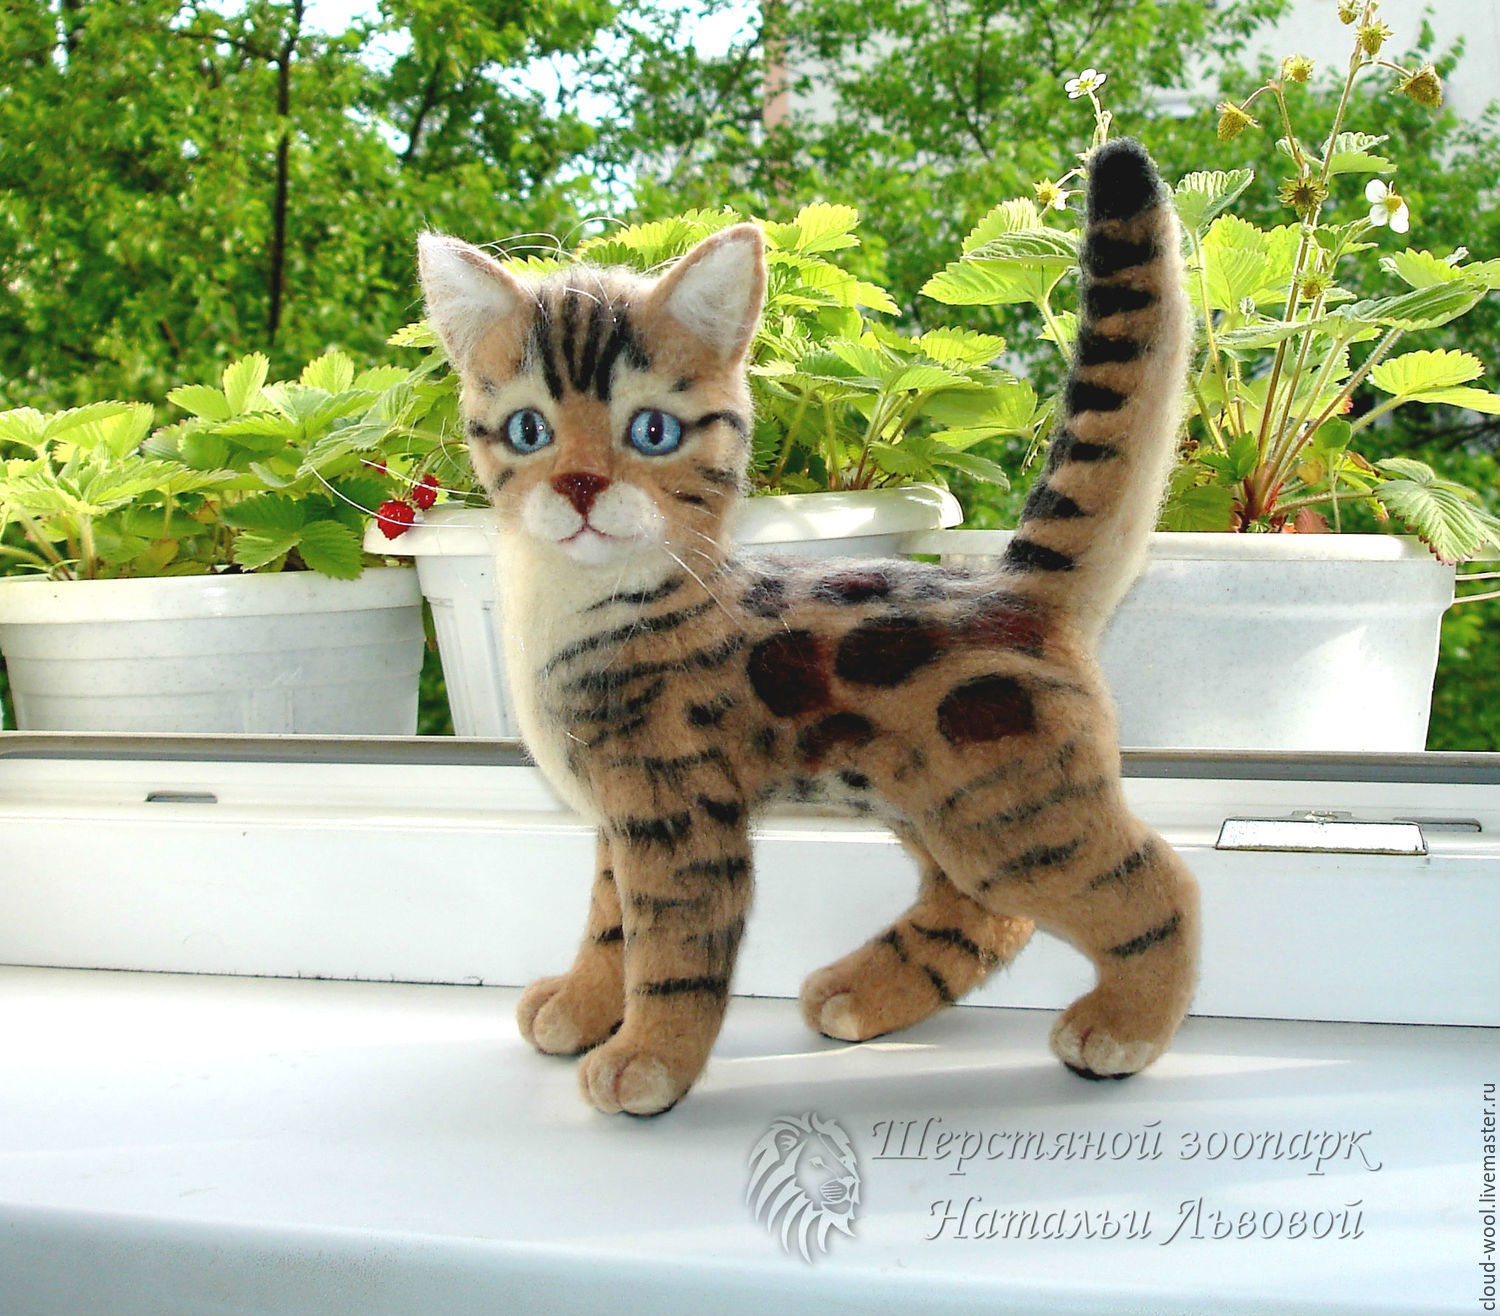 Kitten Bengal / felted toy made of wool / Bengal cat cat – shop ...